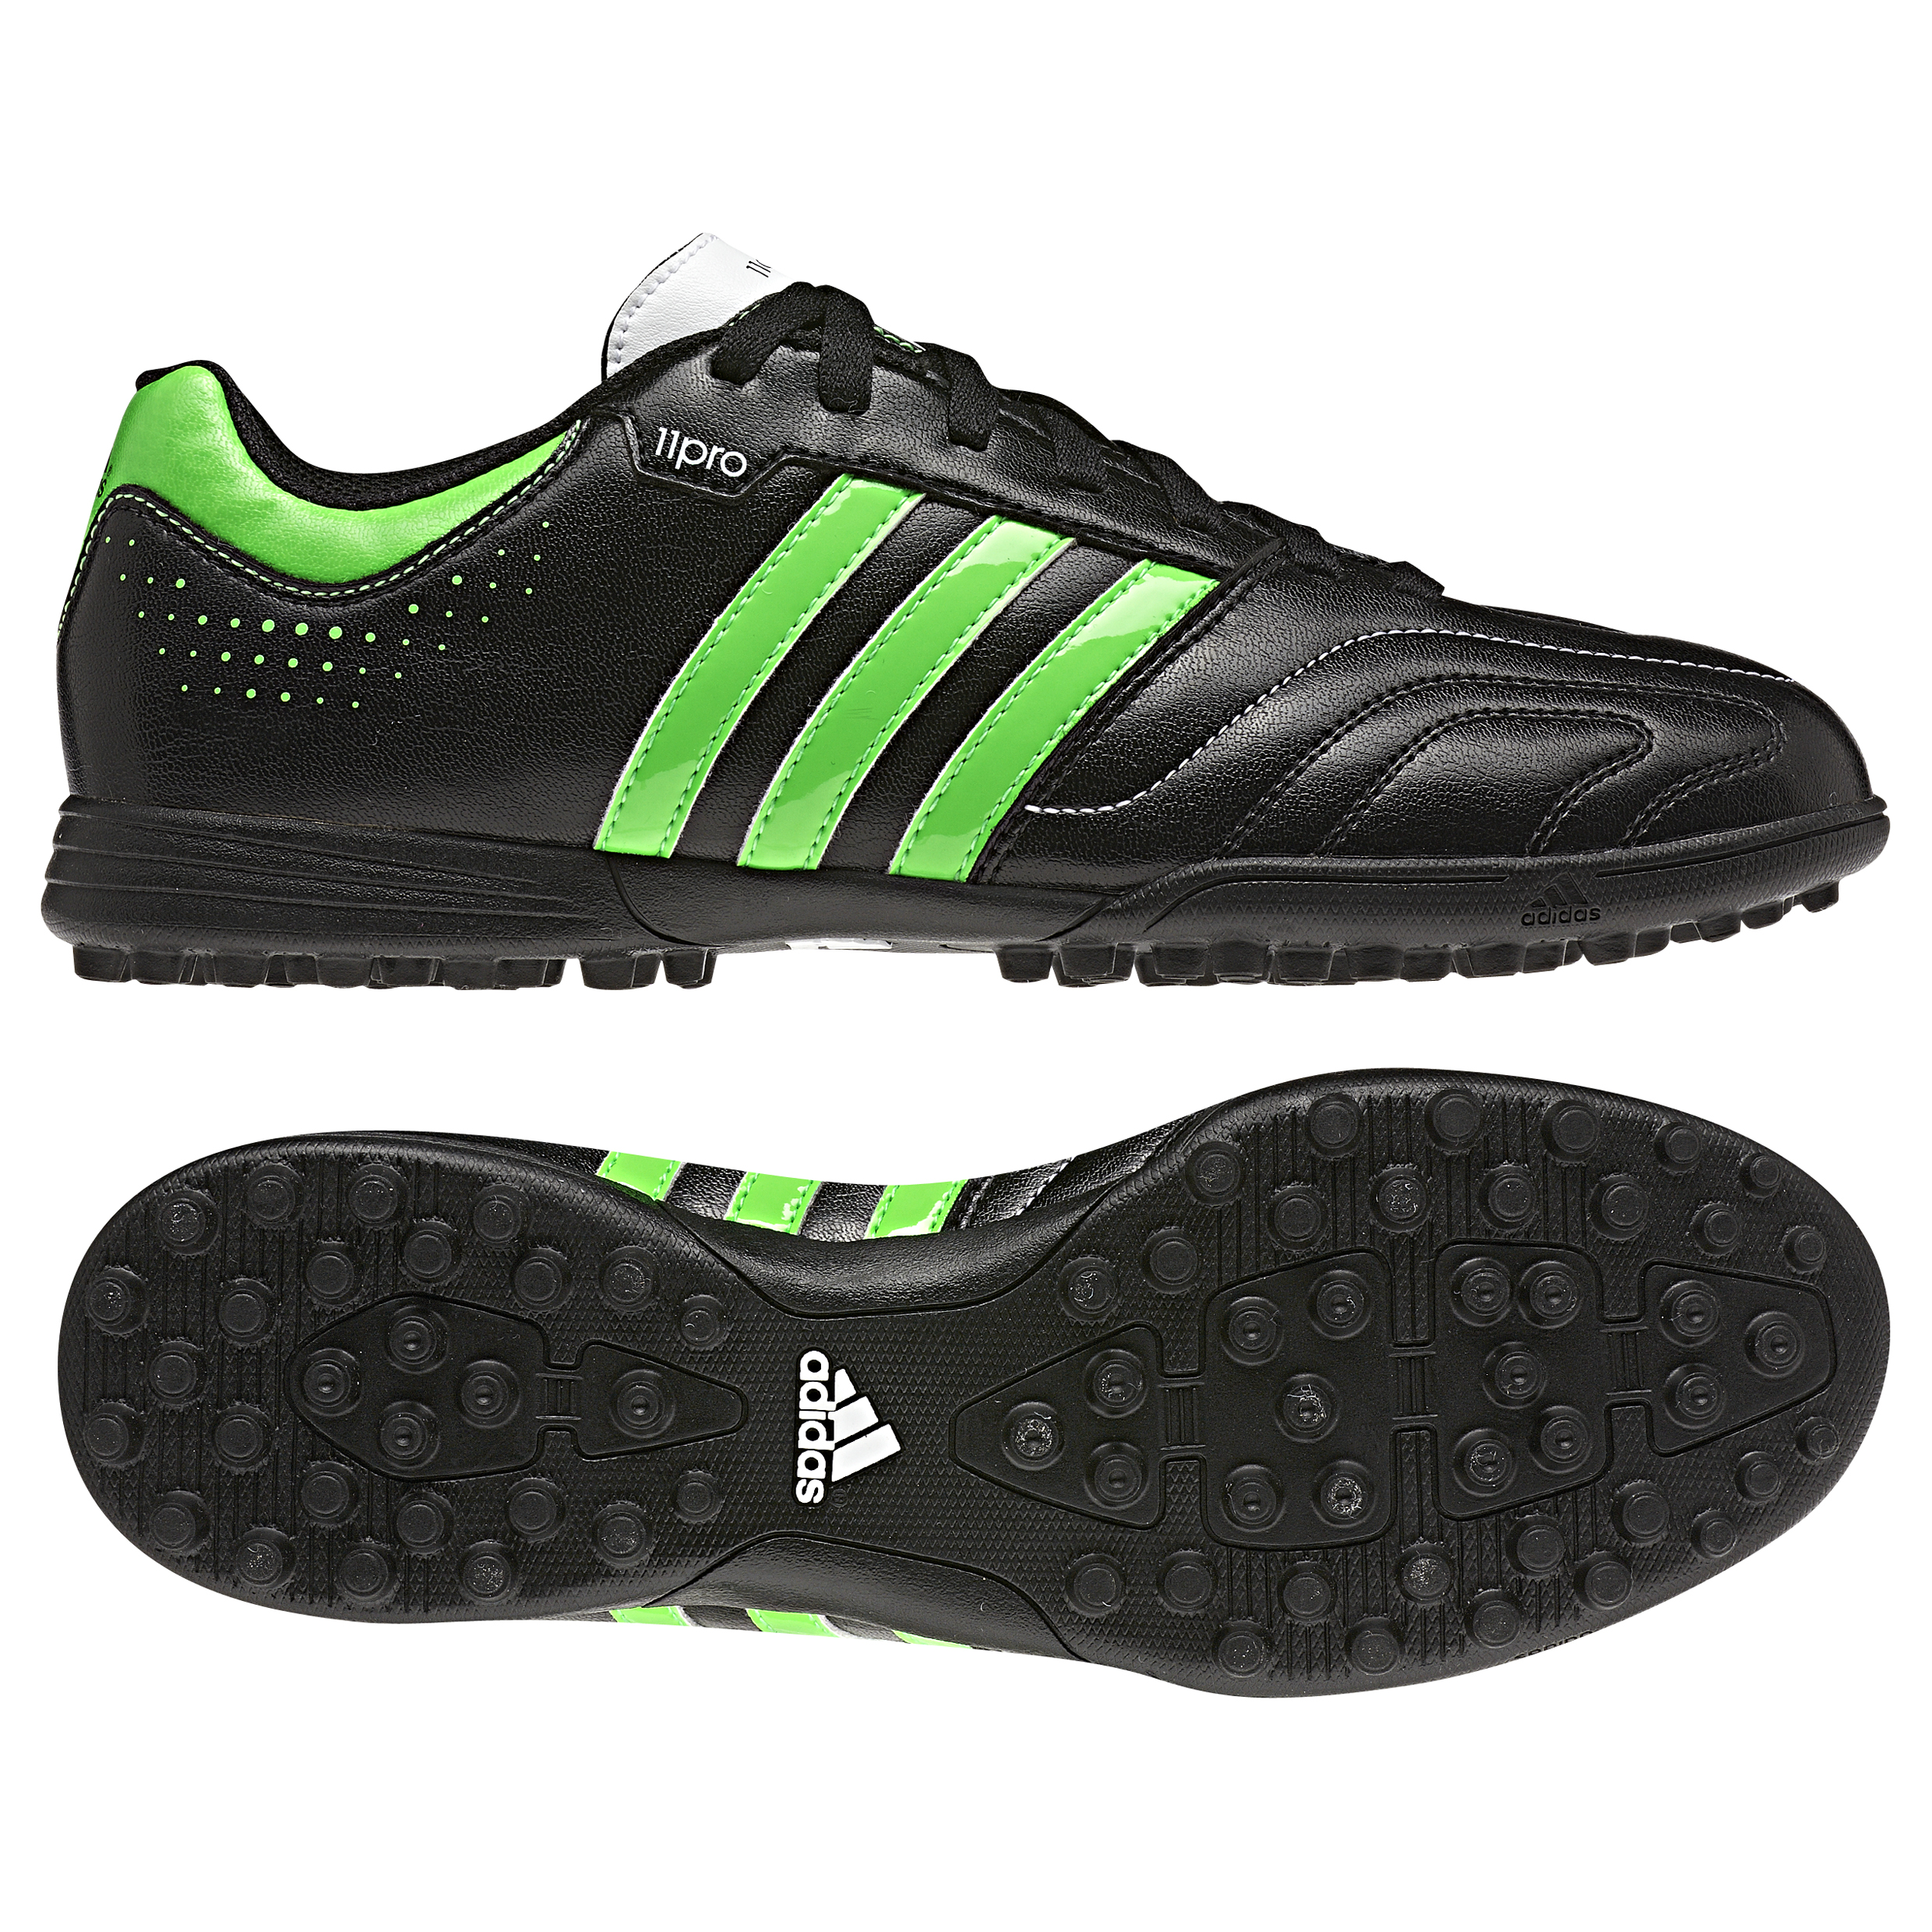 Adidas AdiPure 11Questra TRX Astroturf Trainers - Black/Green Zest/White